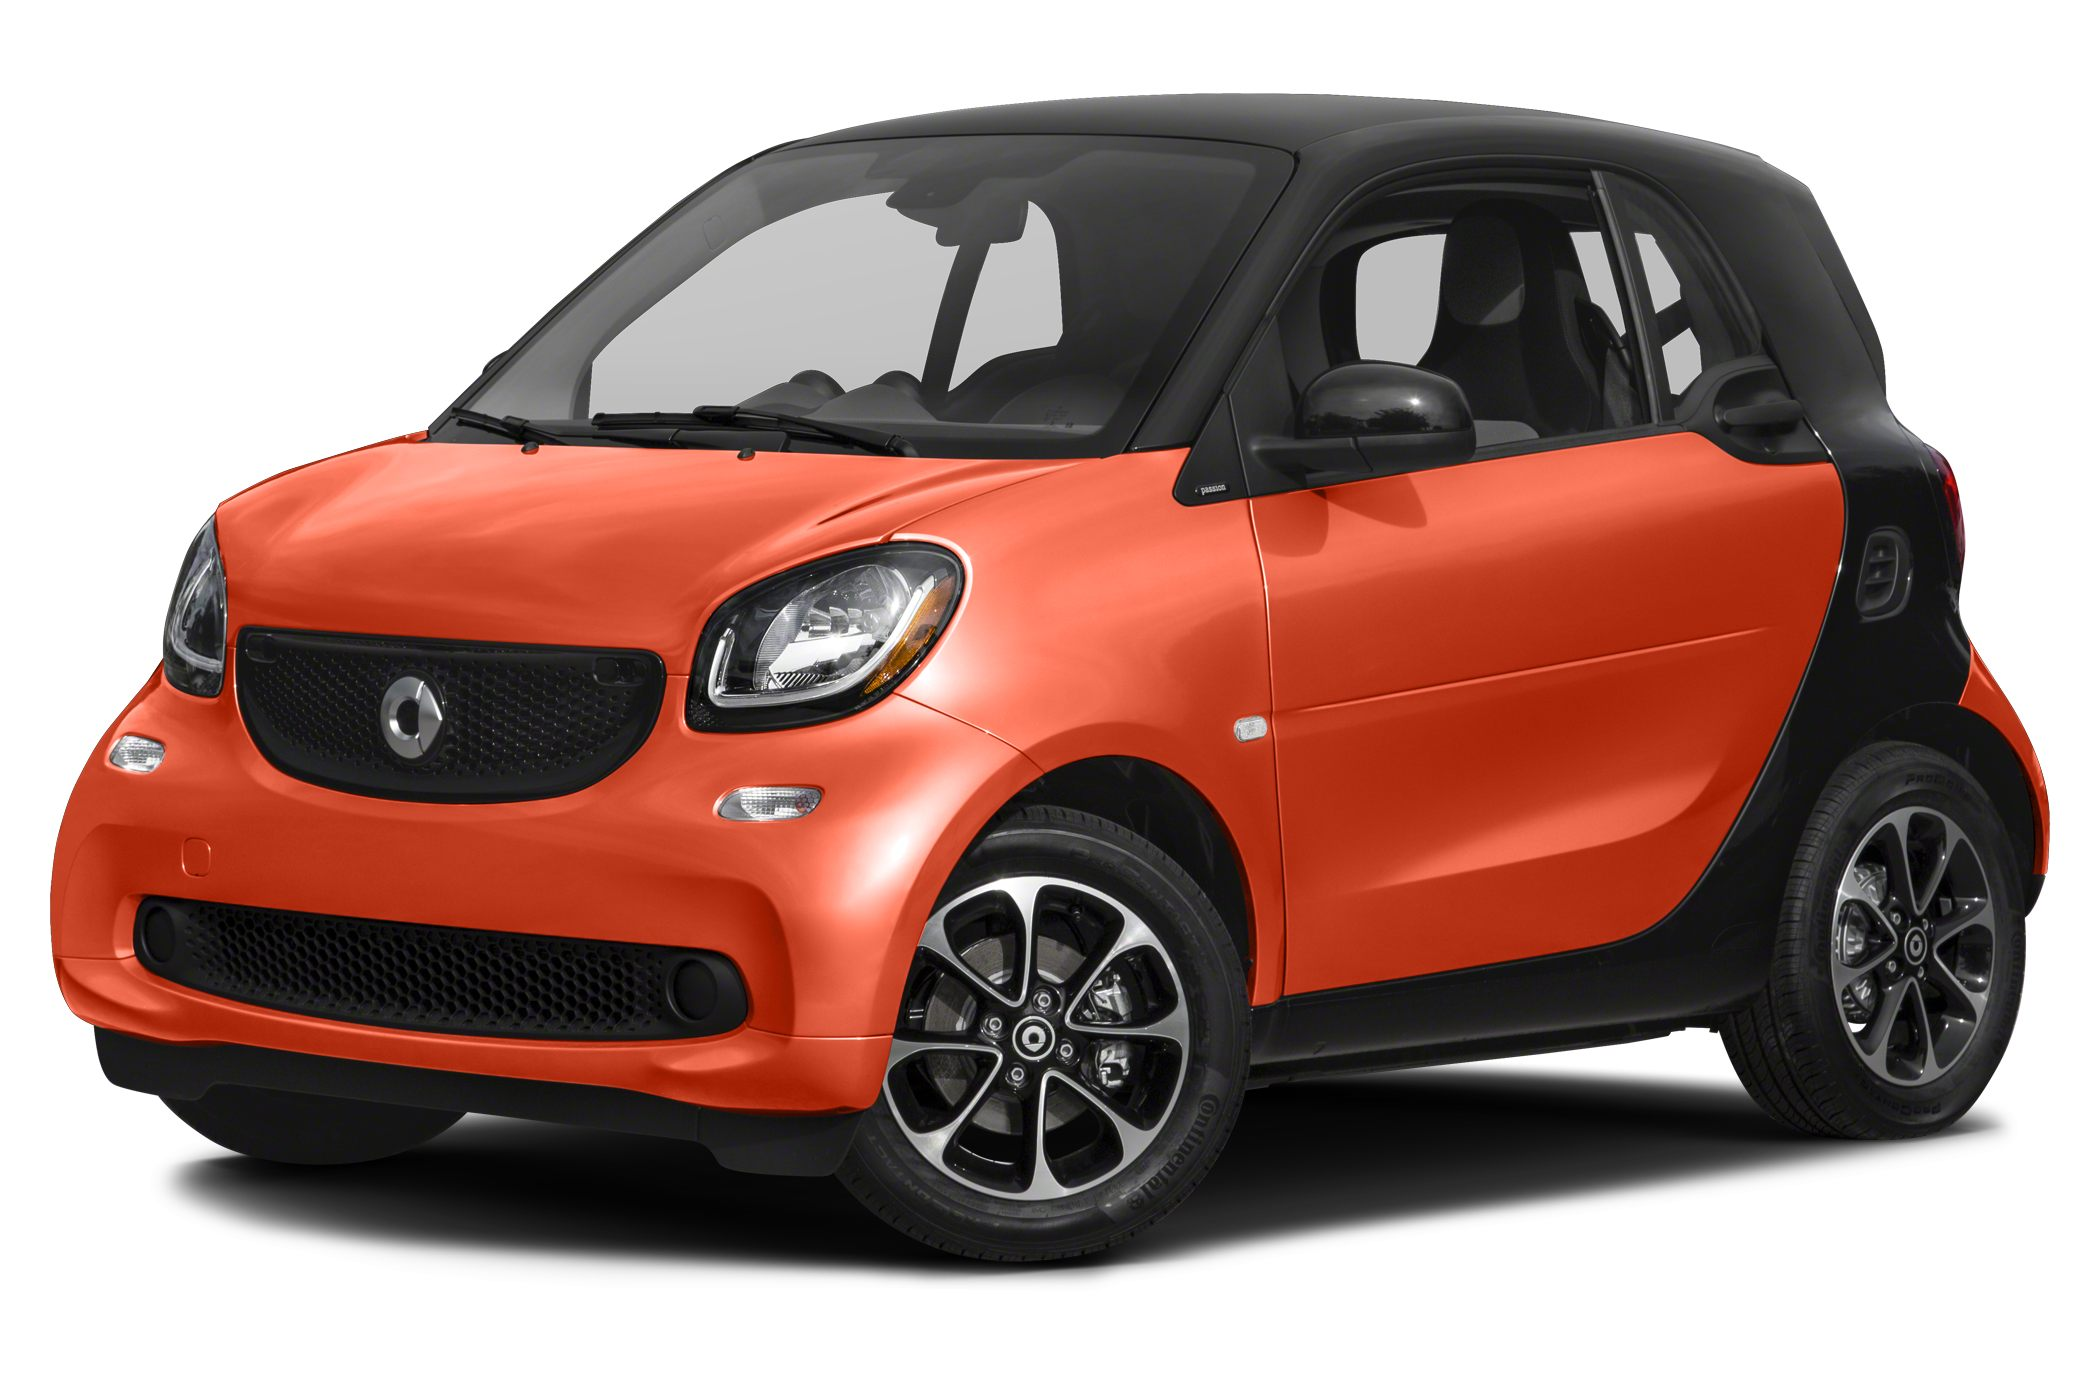 fortwo smart smart fortwo toupeenseen. Black Bedroom Furniture Sets. Home Design Ideas